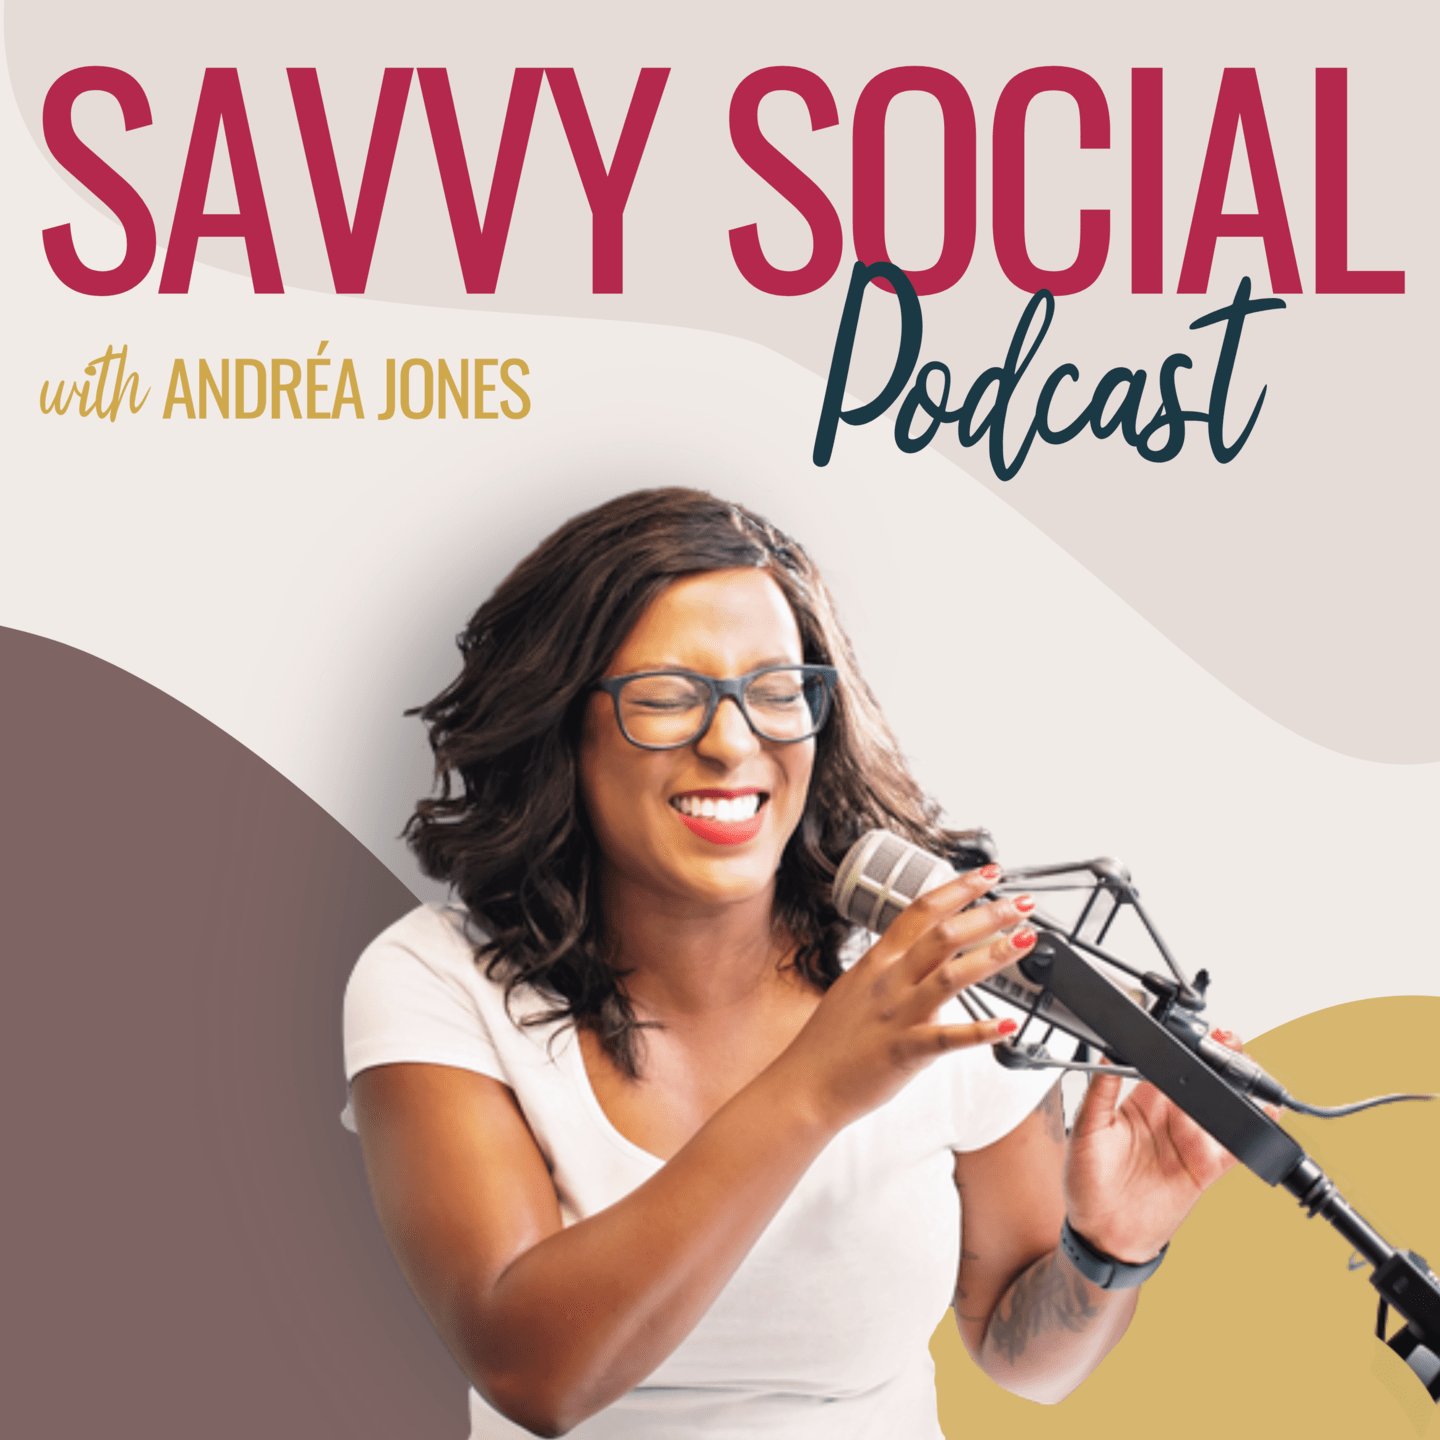 SAVVY SOCIAL Podcast Cover (1)